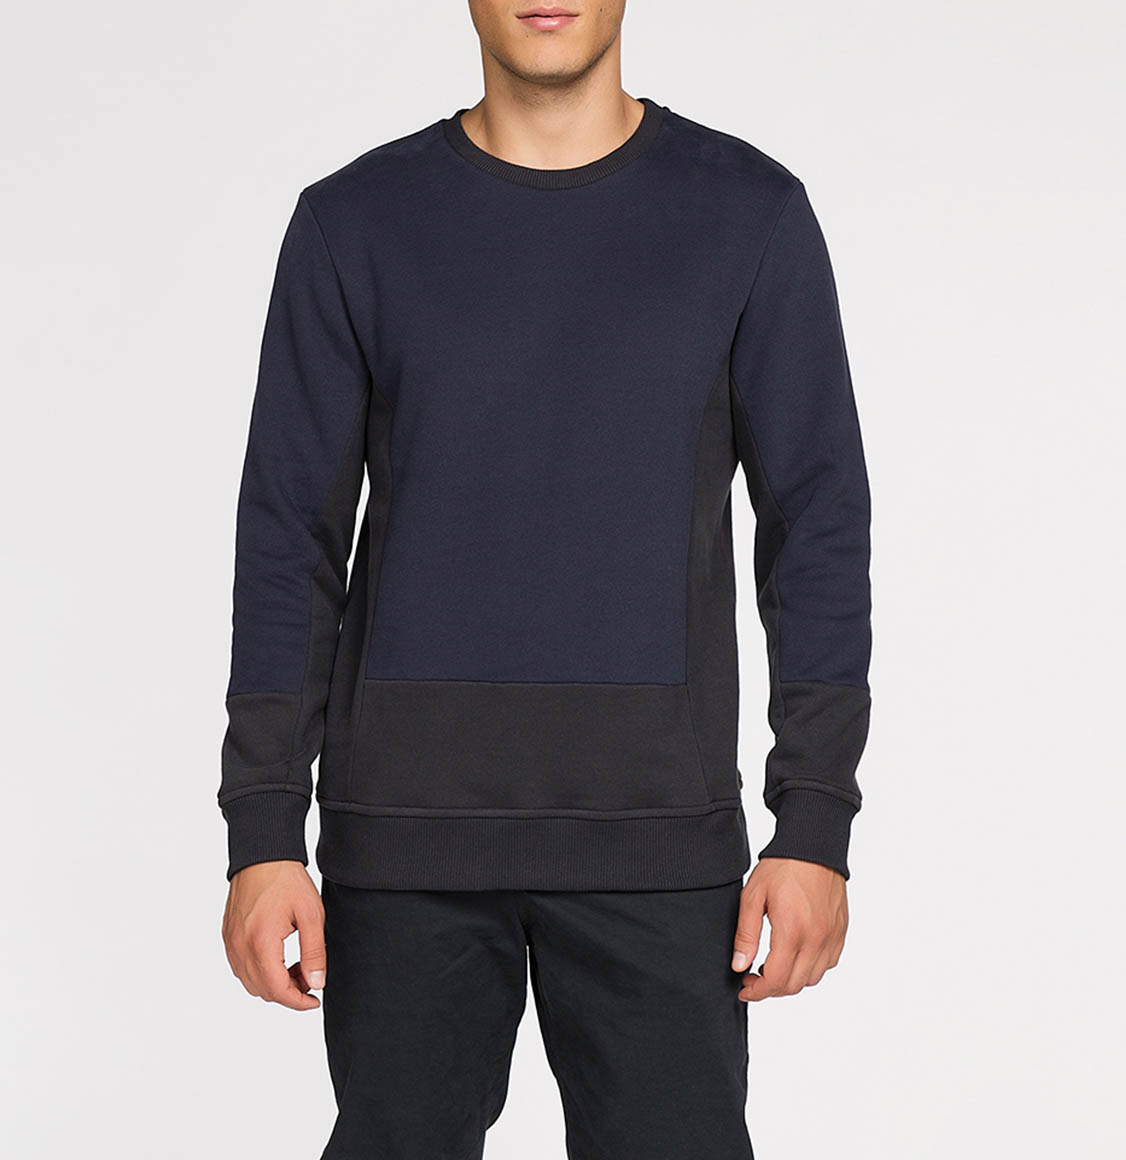 Horizontal Color Block Crew Neck Sweatshirt Navy Blue